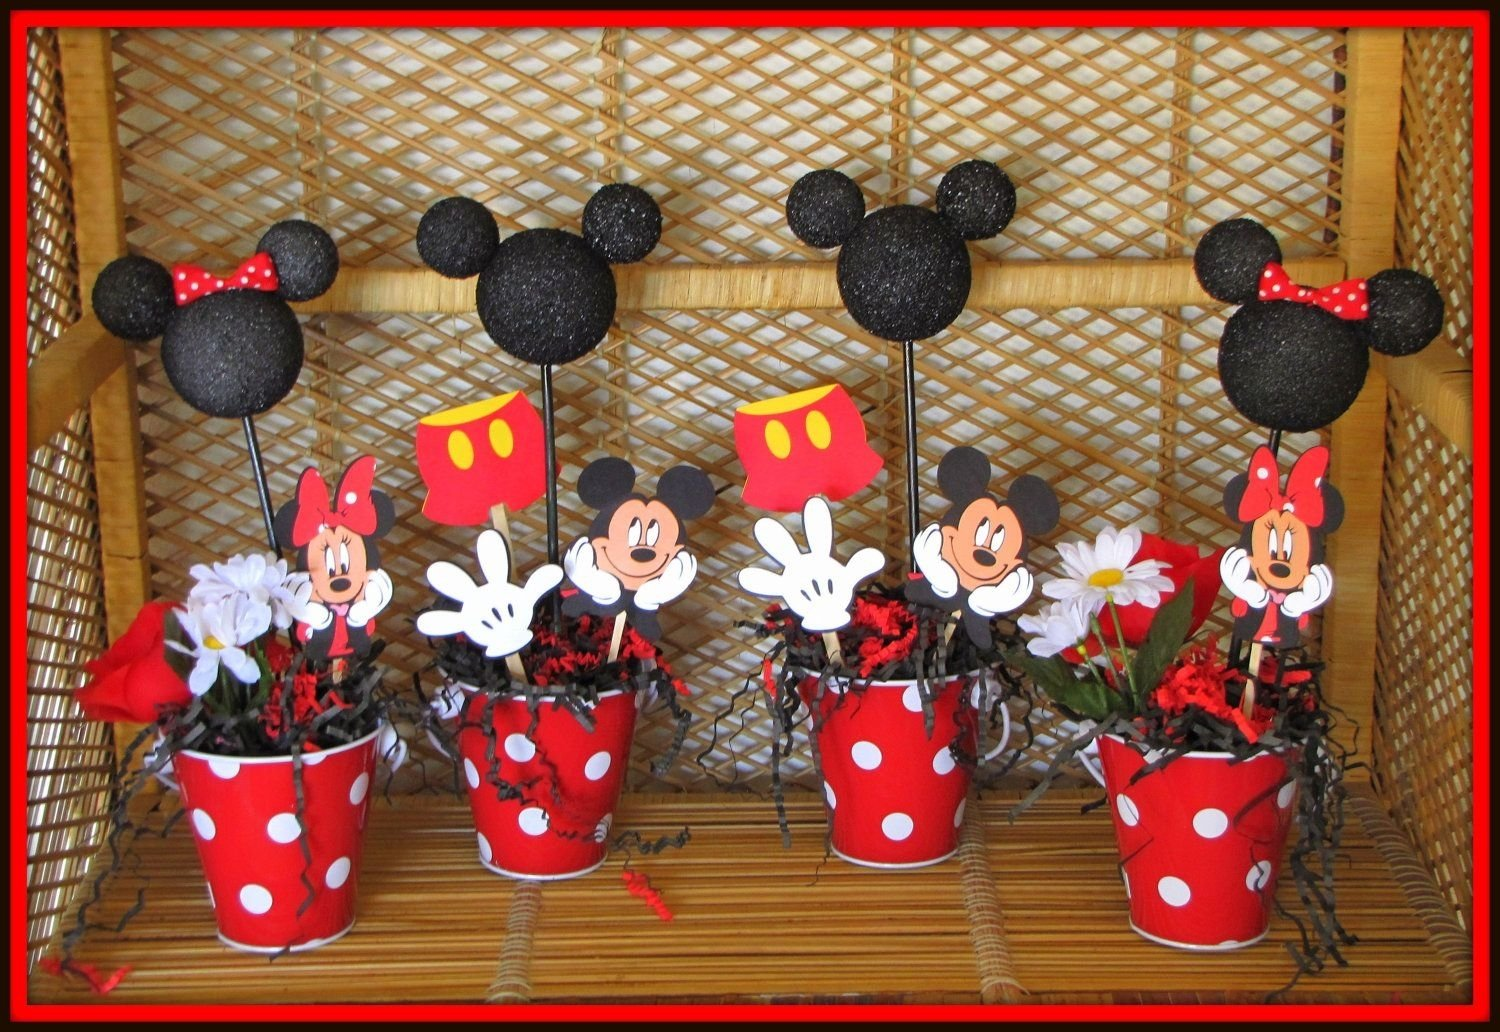 10 Elegant Mickey Mouse Party Decoration Ideas minnie and mickey party decorations photos mickey mouse birthday 1